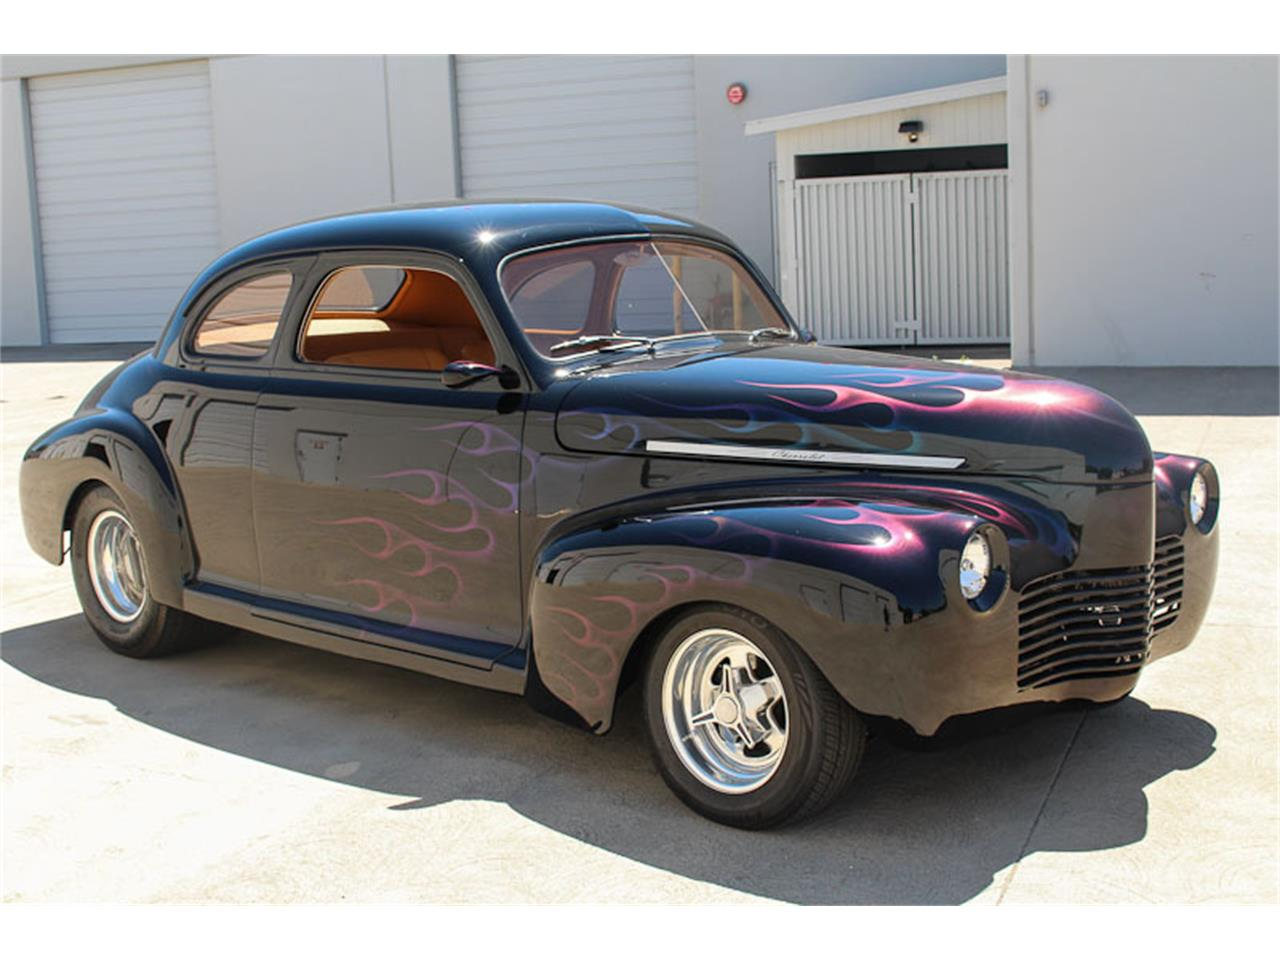 Large Picture of 1941 Chevrolet 1 Ton Pickup located in Fairfield California - $64,990.00 - LS5Q